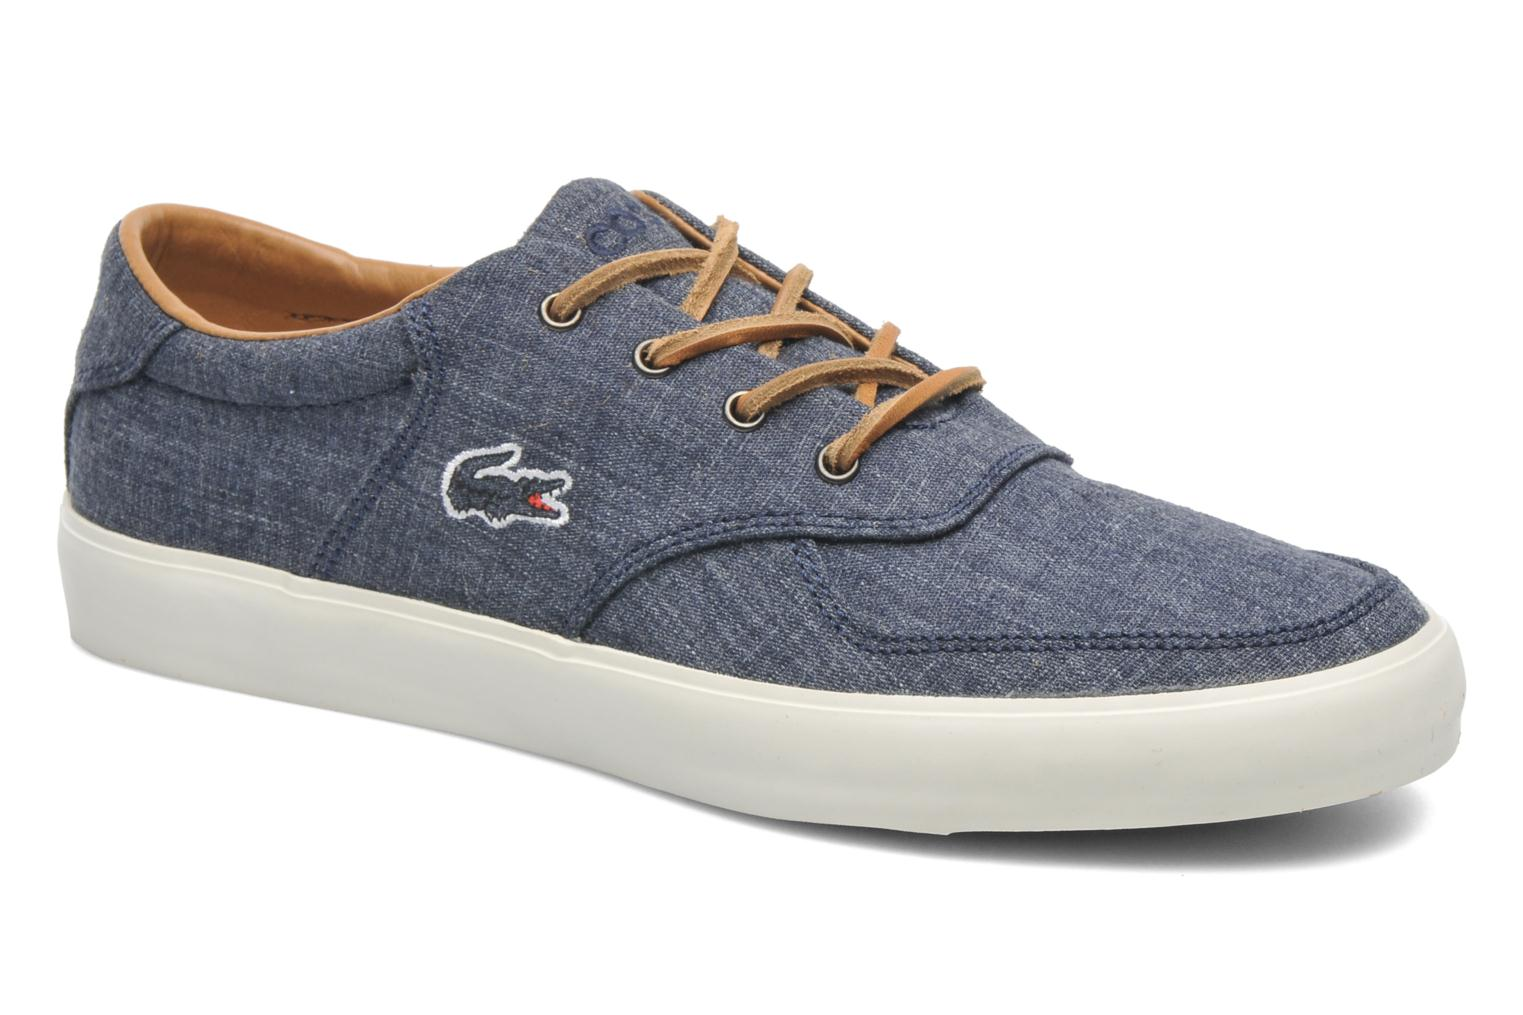 Sneakers Glendon 12 by Lacoste